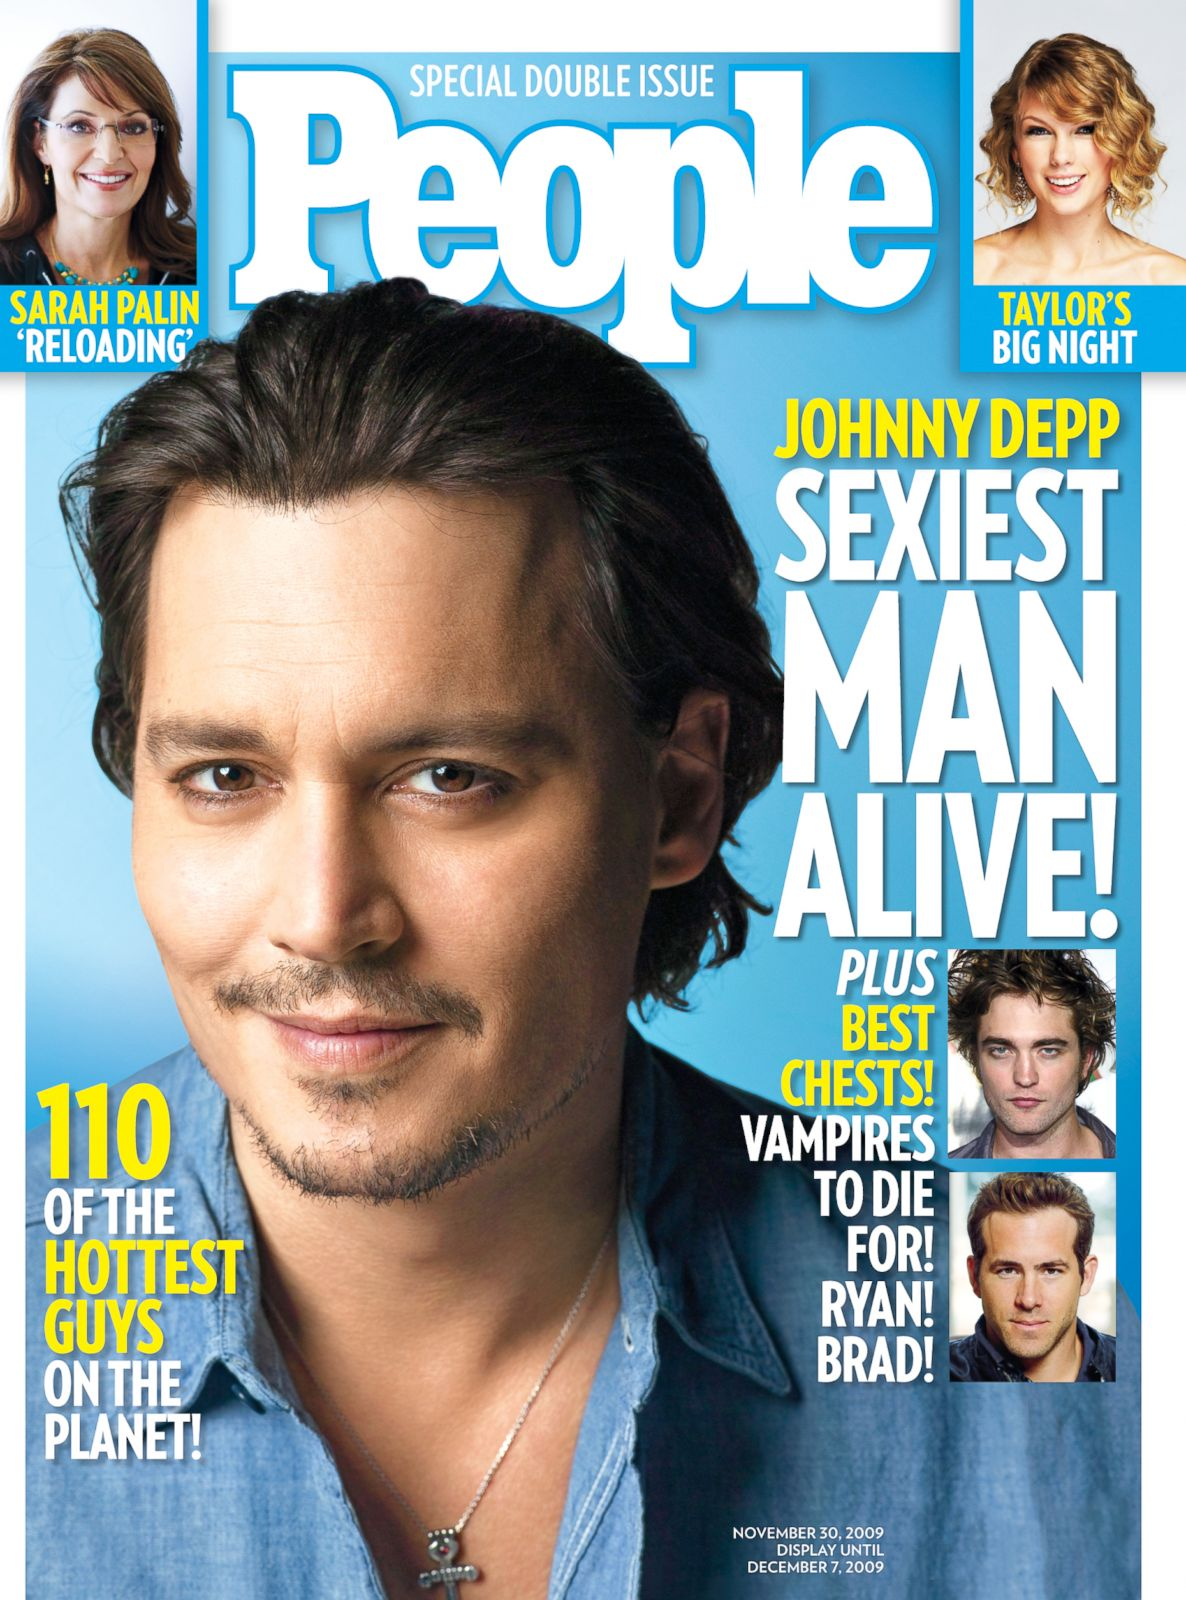 People Magazine S Sexiest Man Alive Through The Years Photos Abc News